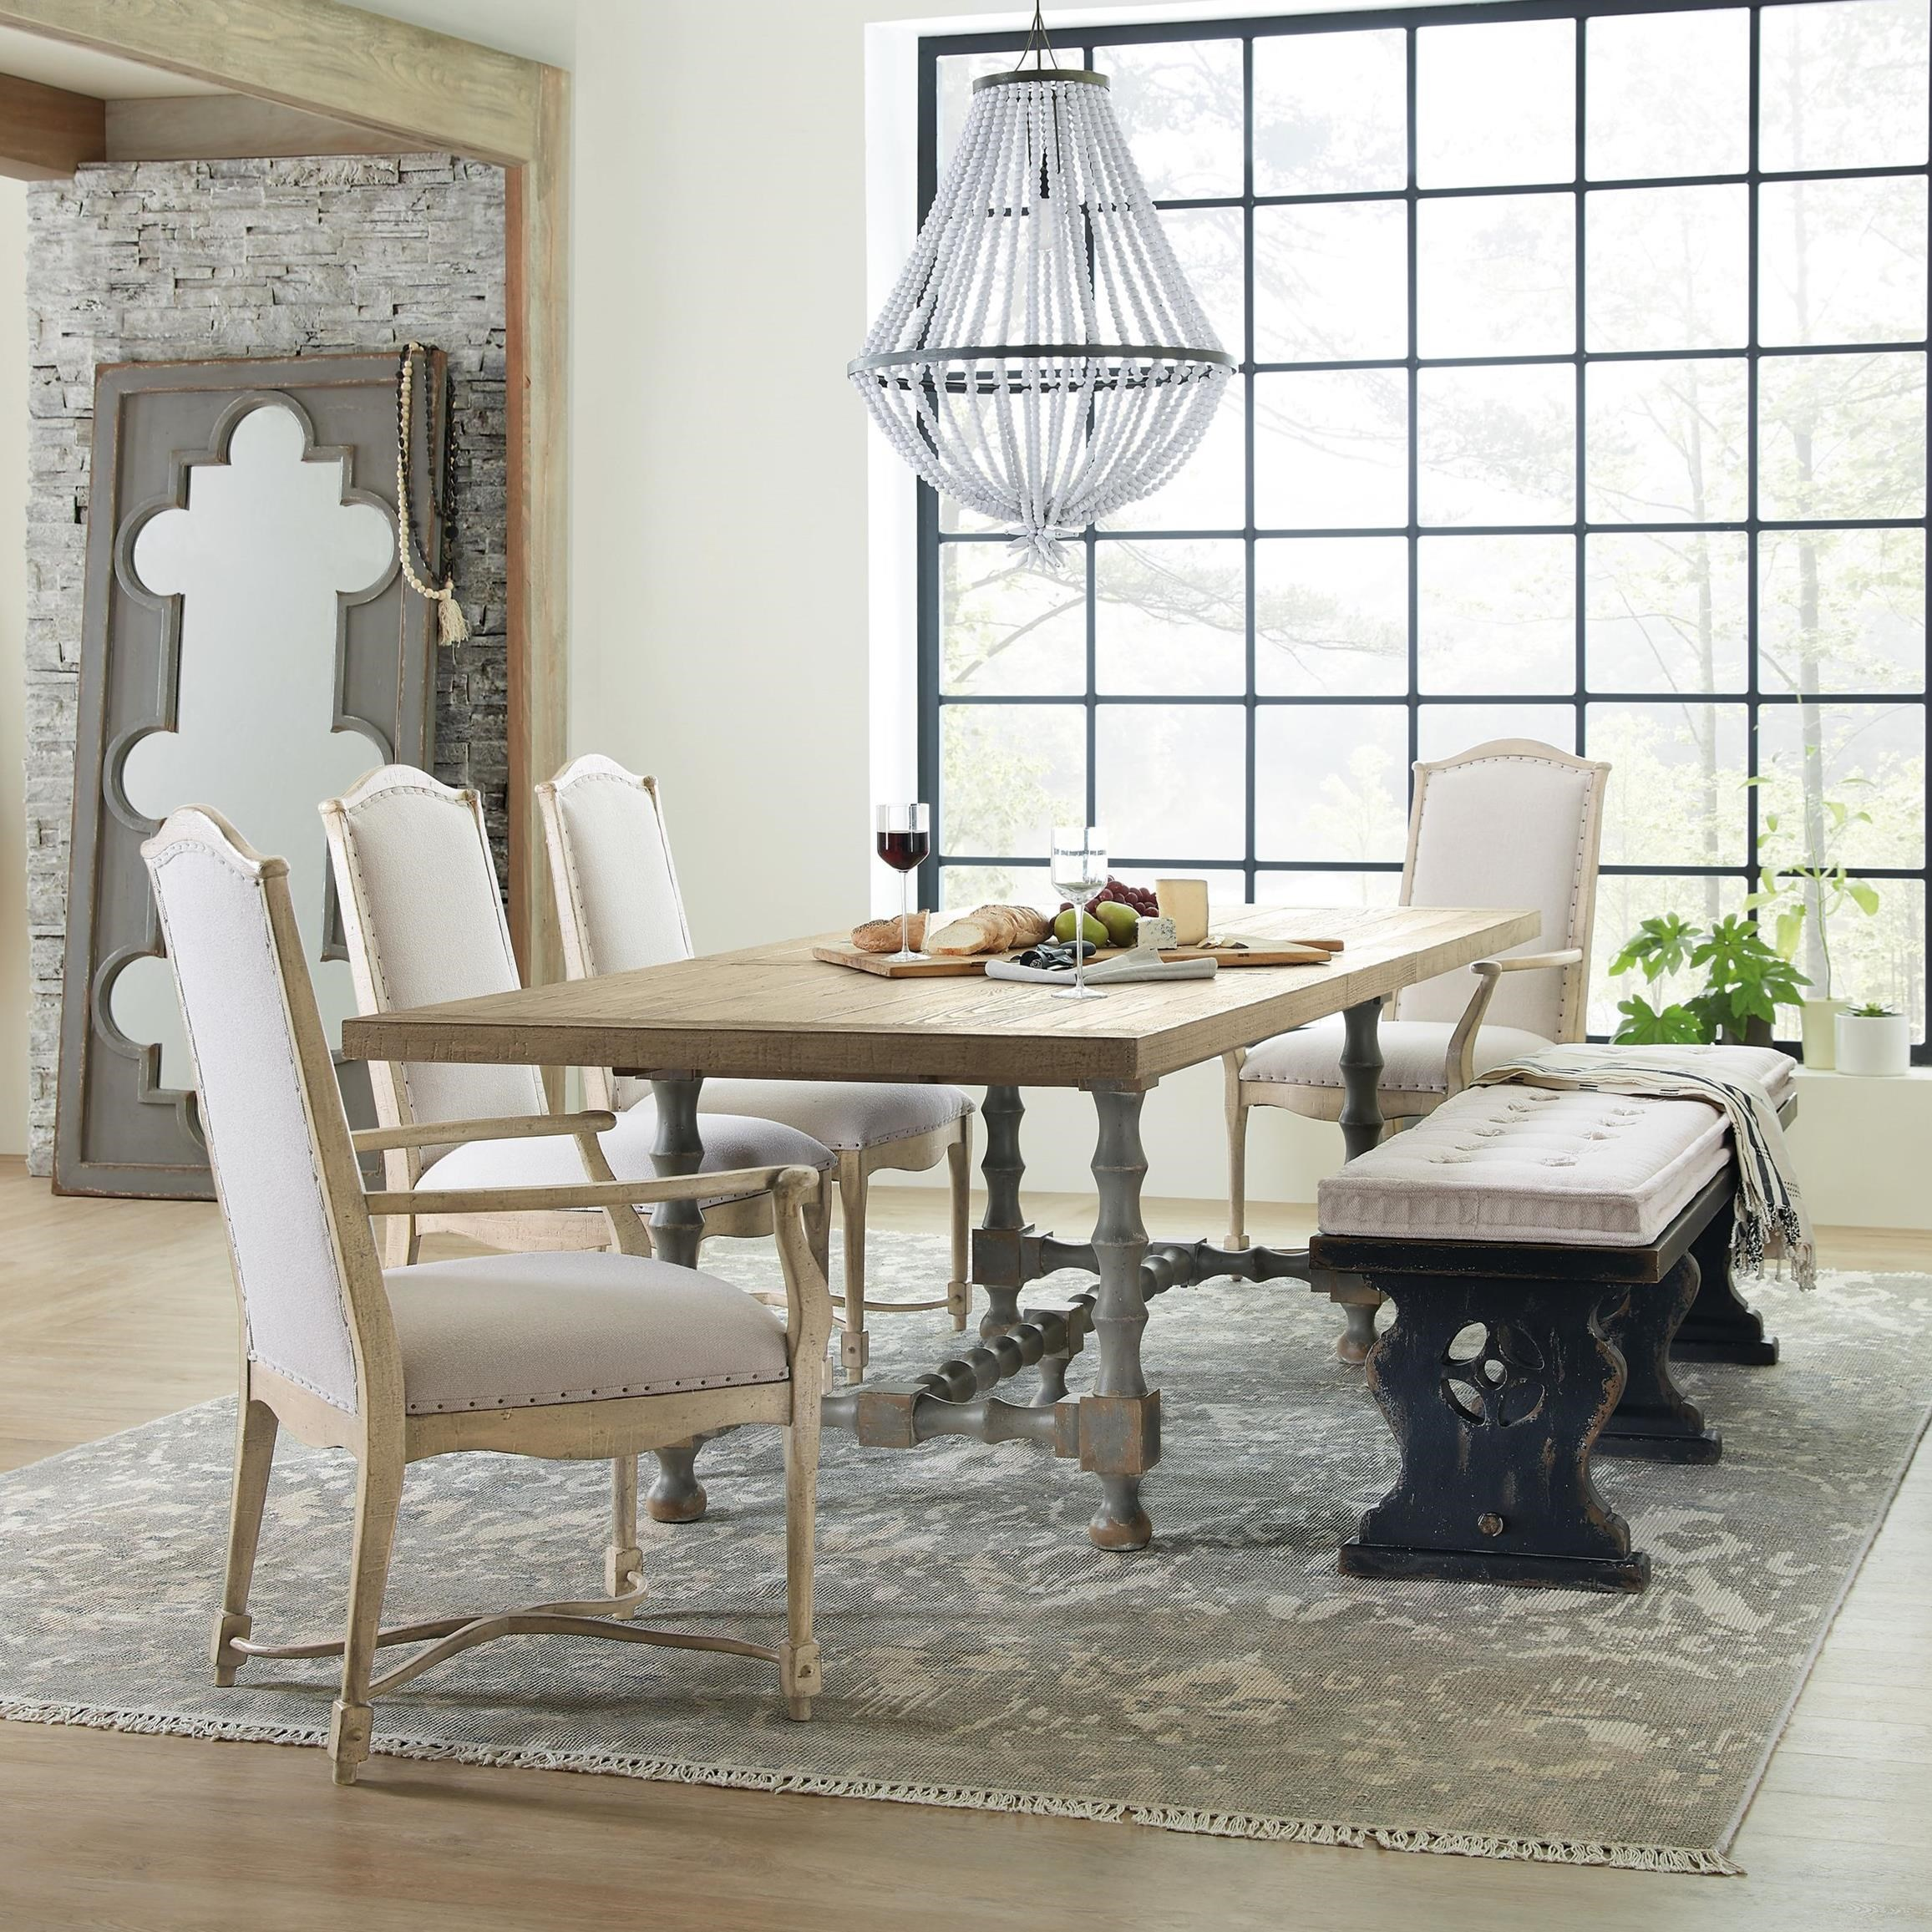 Ciao Bella 6-Piece Table and Chair Set with Bench by Hooker Furniture at Miller Waldrop Furniture and Decor